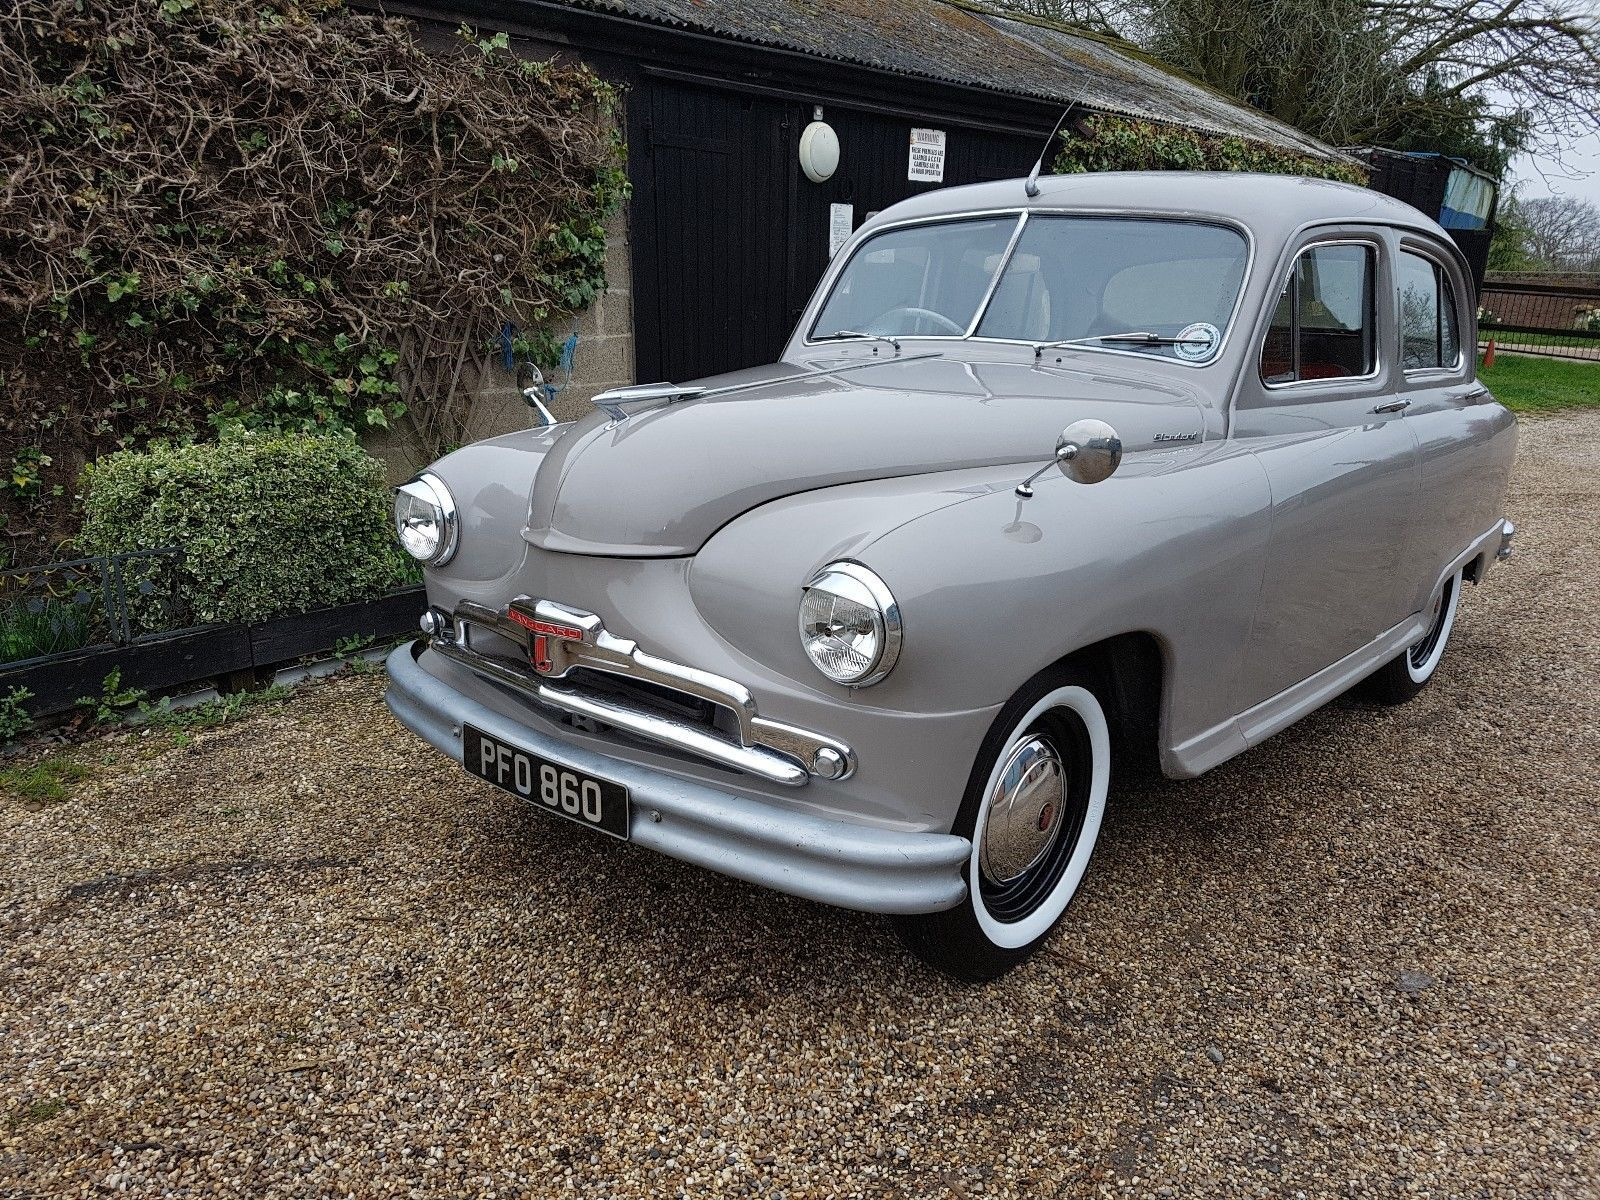 Standard vanguard phase 2 | Pinterest | Cars, Vehicle and British car